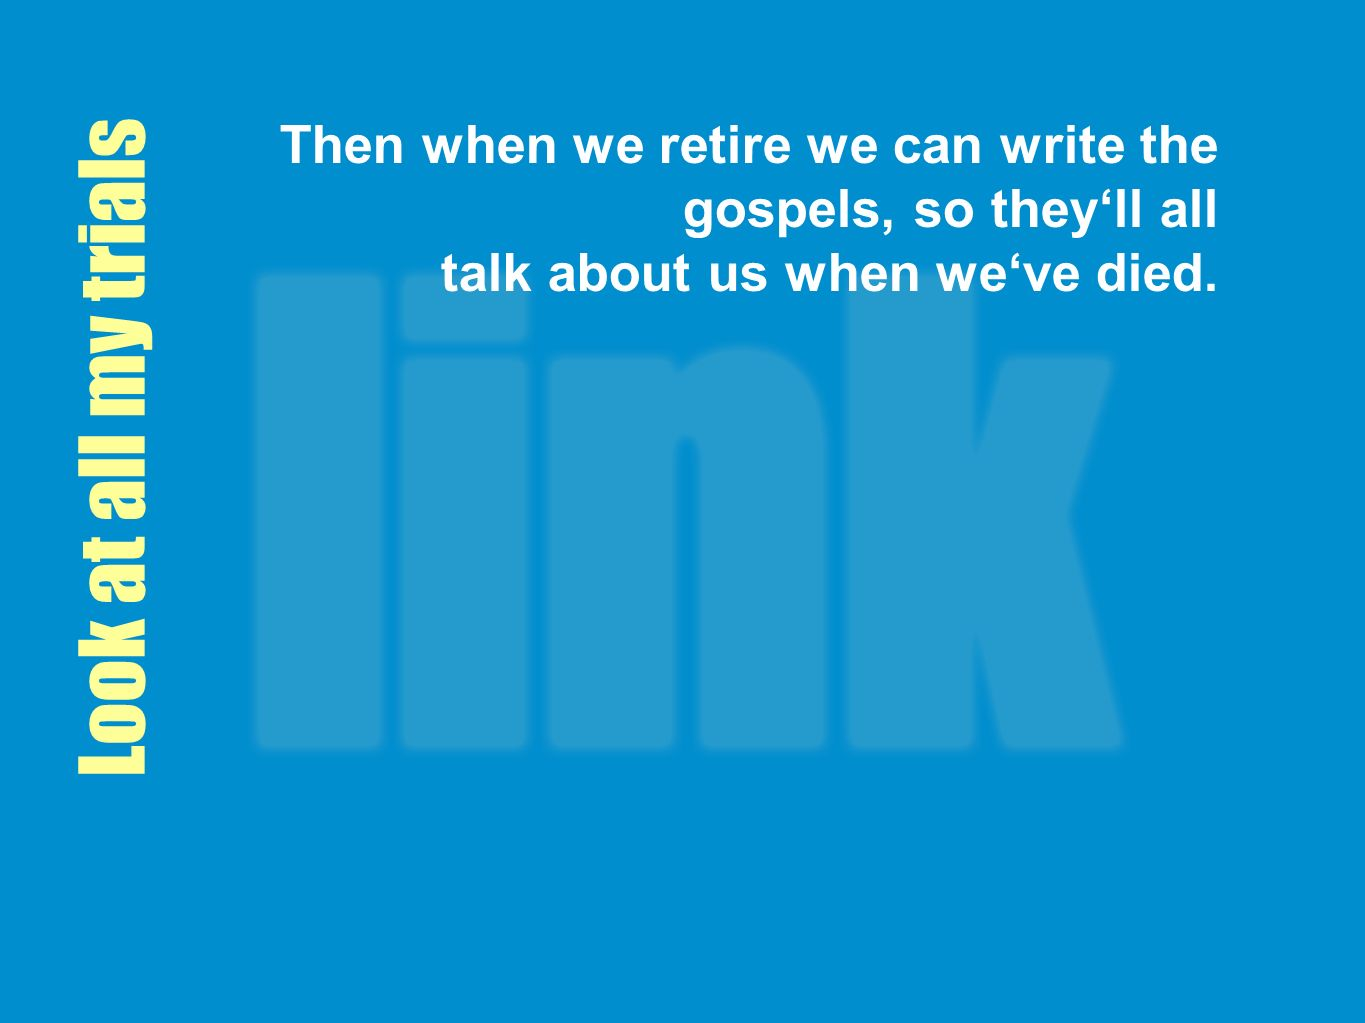 Then when we retire we can write the gospels, so they'll all talk about us when we've died.